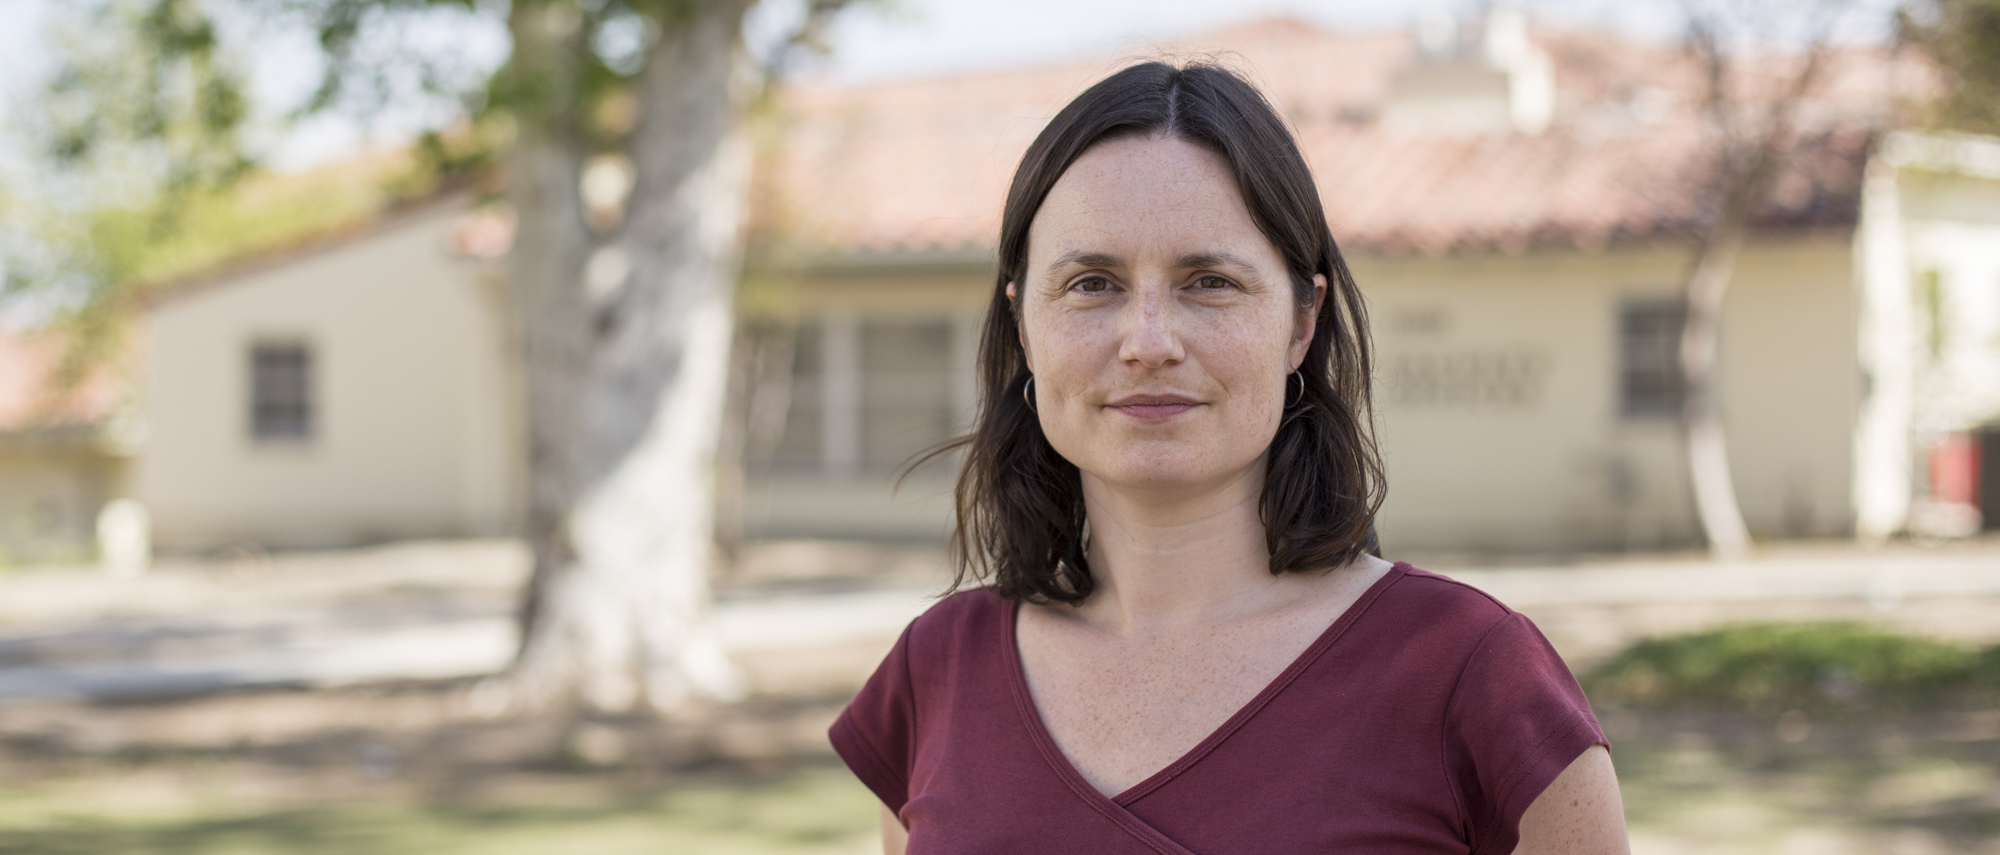 Modern languages professor brings her culture to class